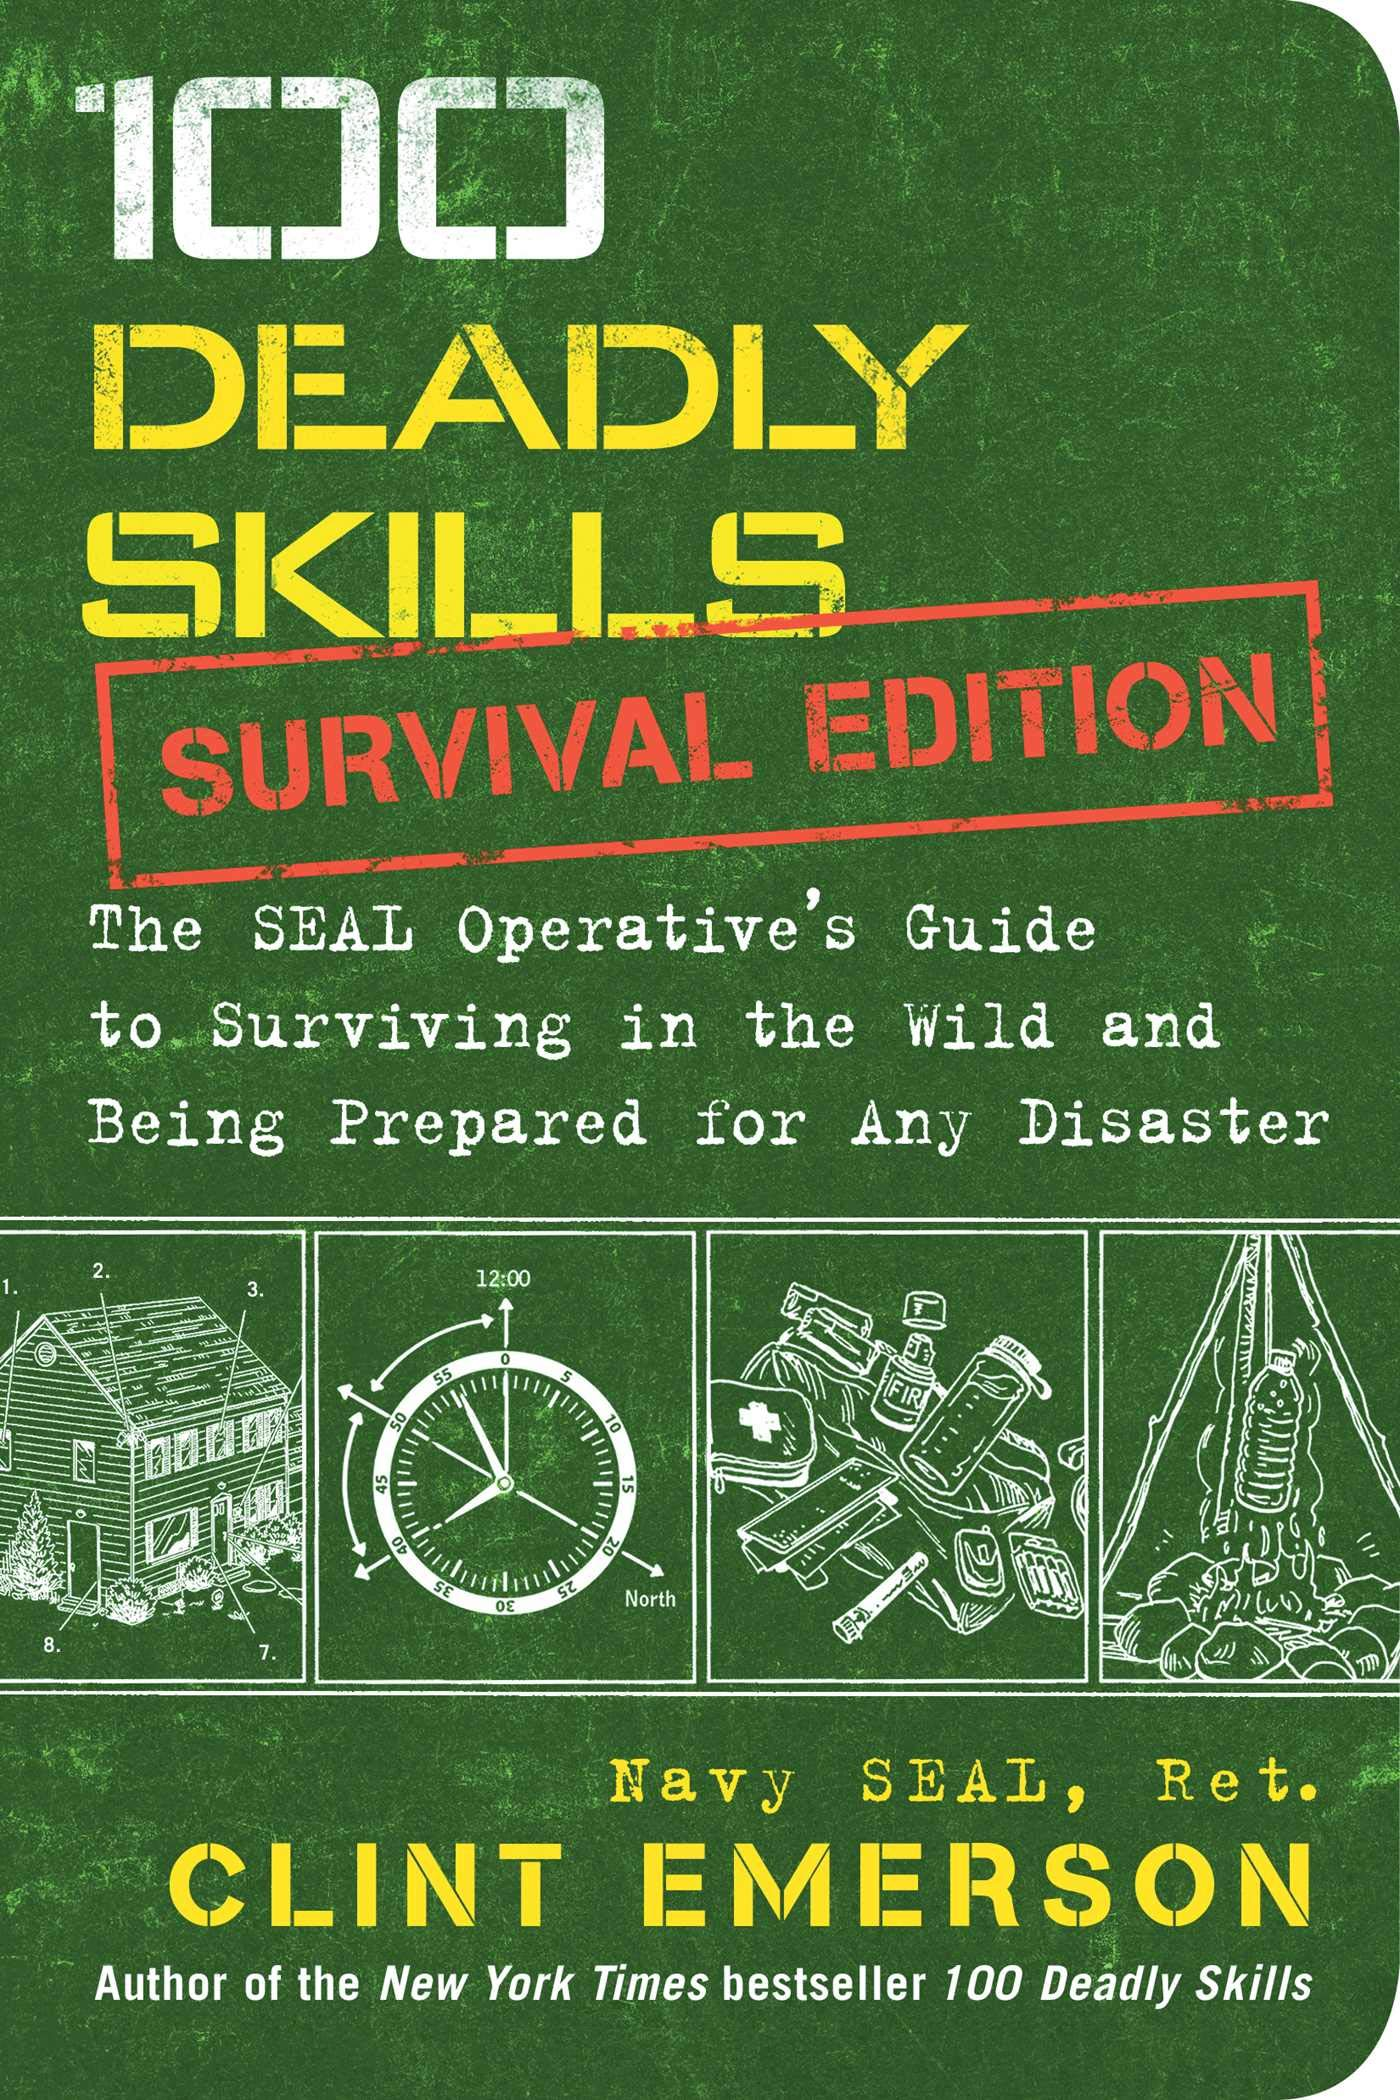 100 Deadly Skills: Survival Edition: The SEAL Operative's Guide to Surviving in the Wild and Being Prepared for Any Disaster by Atria Books